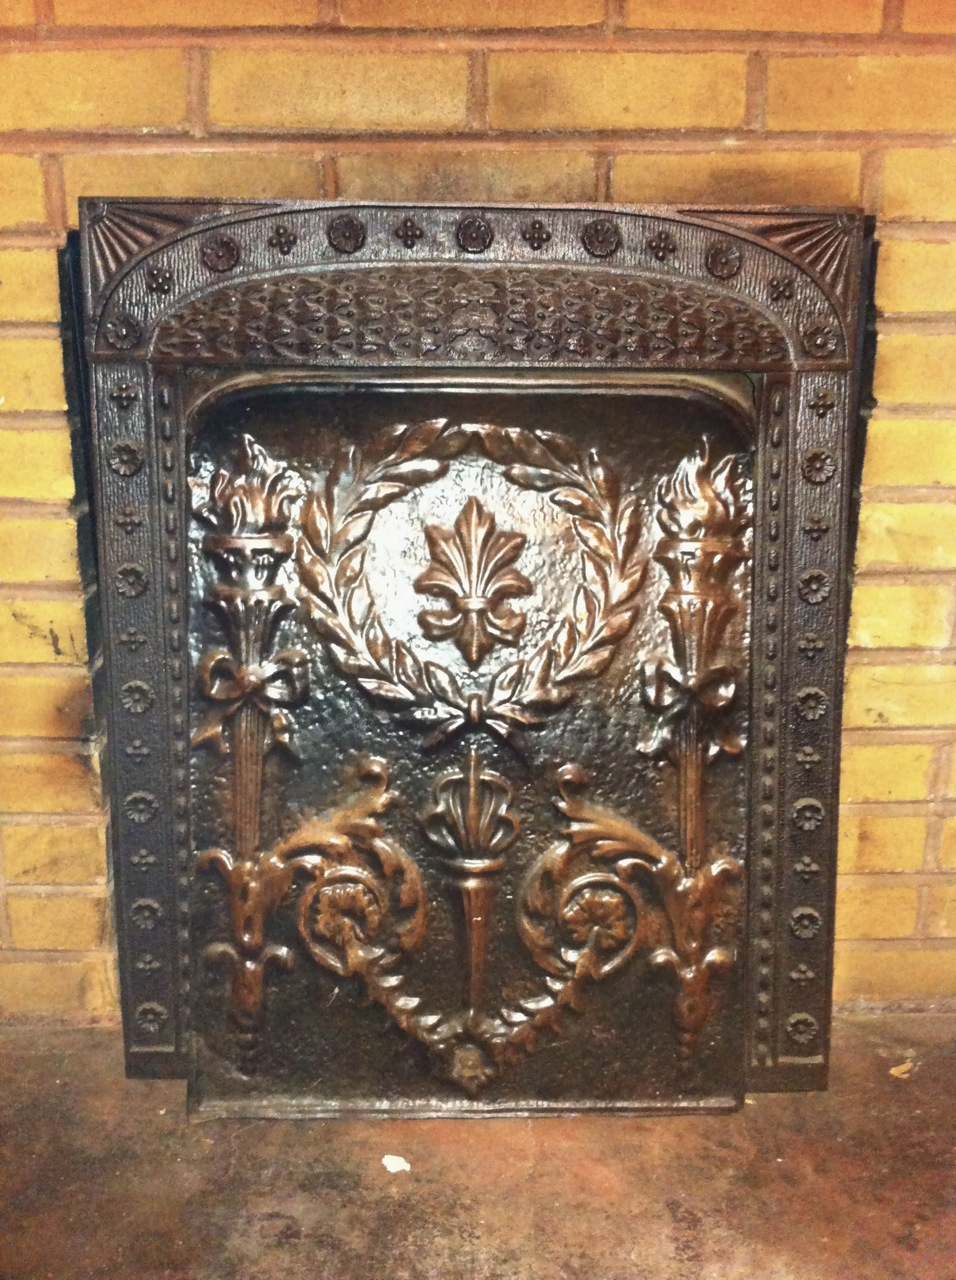 Bungalow Cpr Coal Burning Fireplace Cover